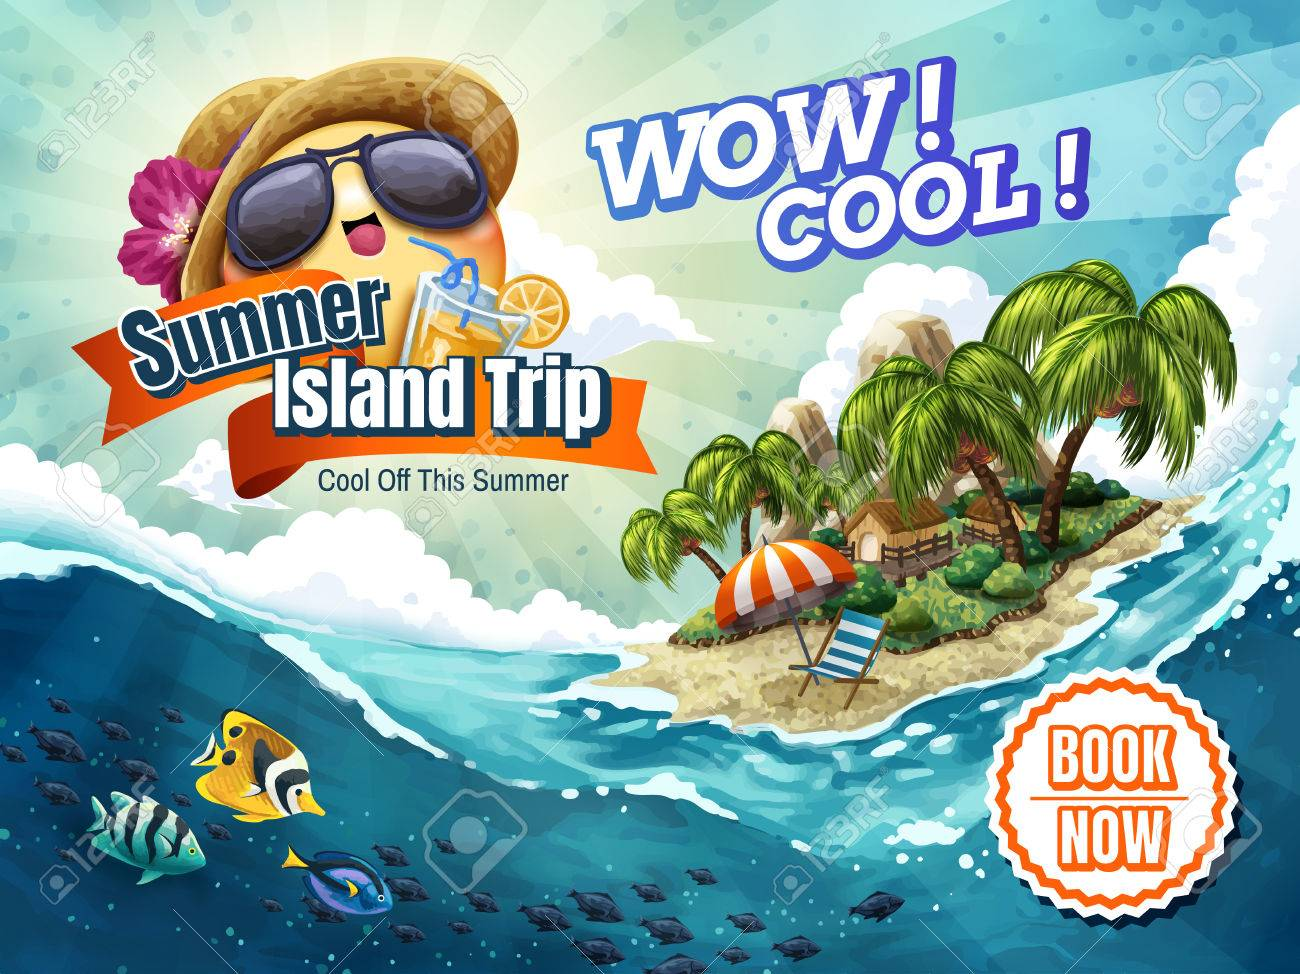 Summer Island Trip Tour Attractive Vacation Package Ad For Travel Agency Or Blog With